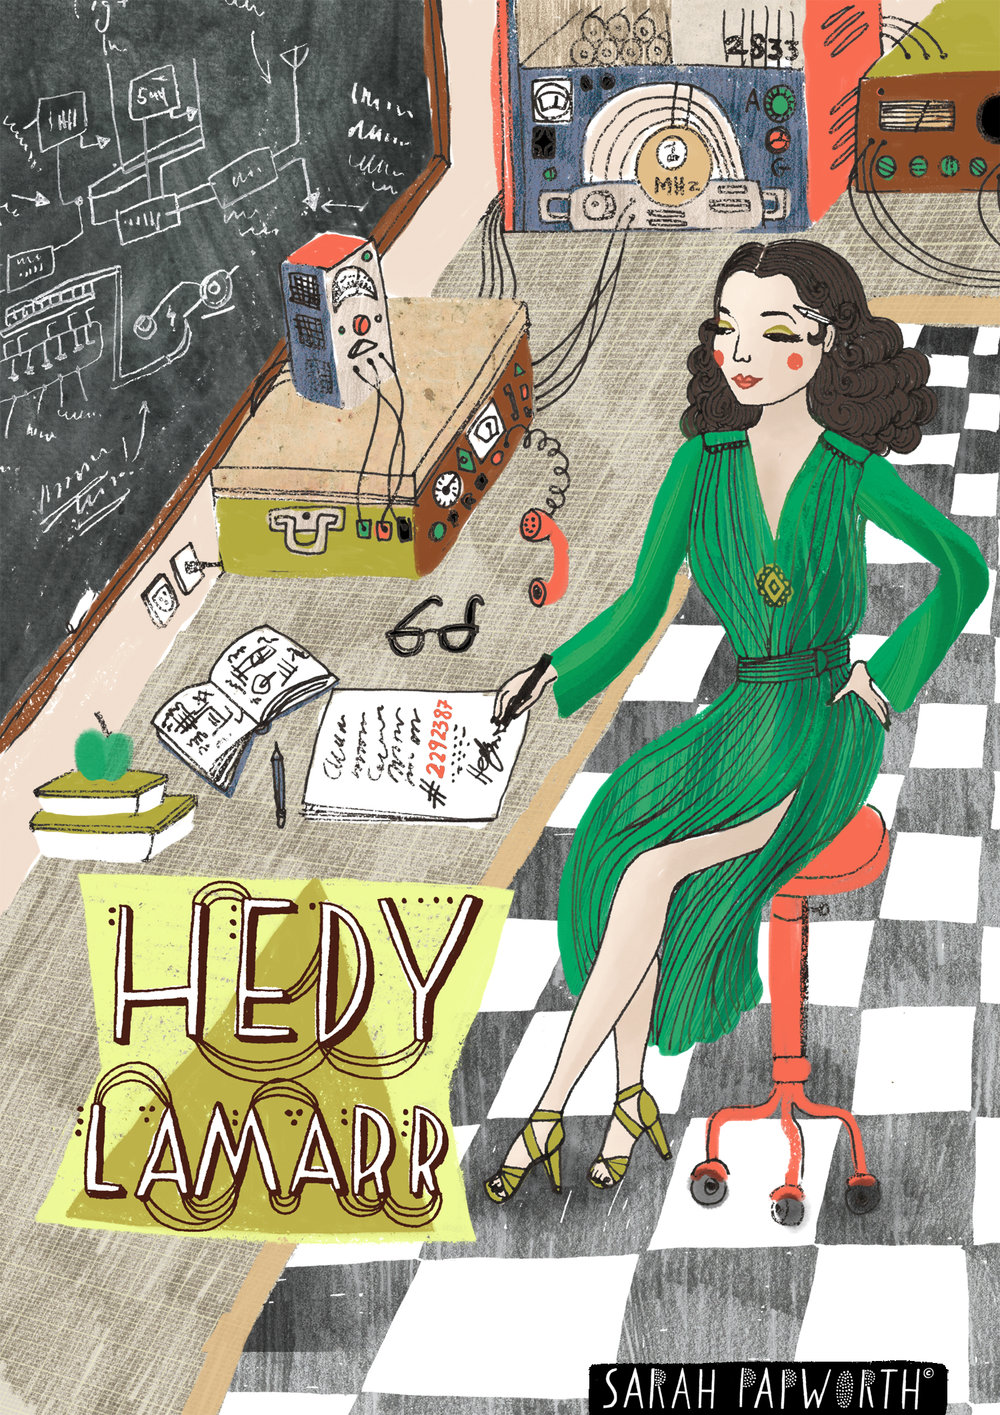 hedy lamarr illustrated portrait film star book illusration sarah papworth low res.jpg